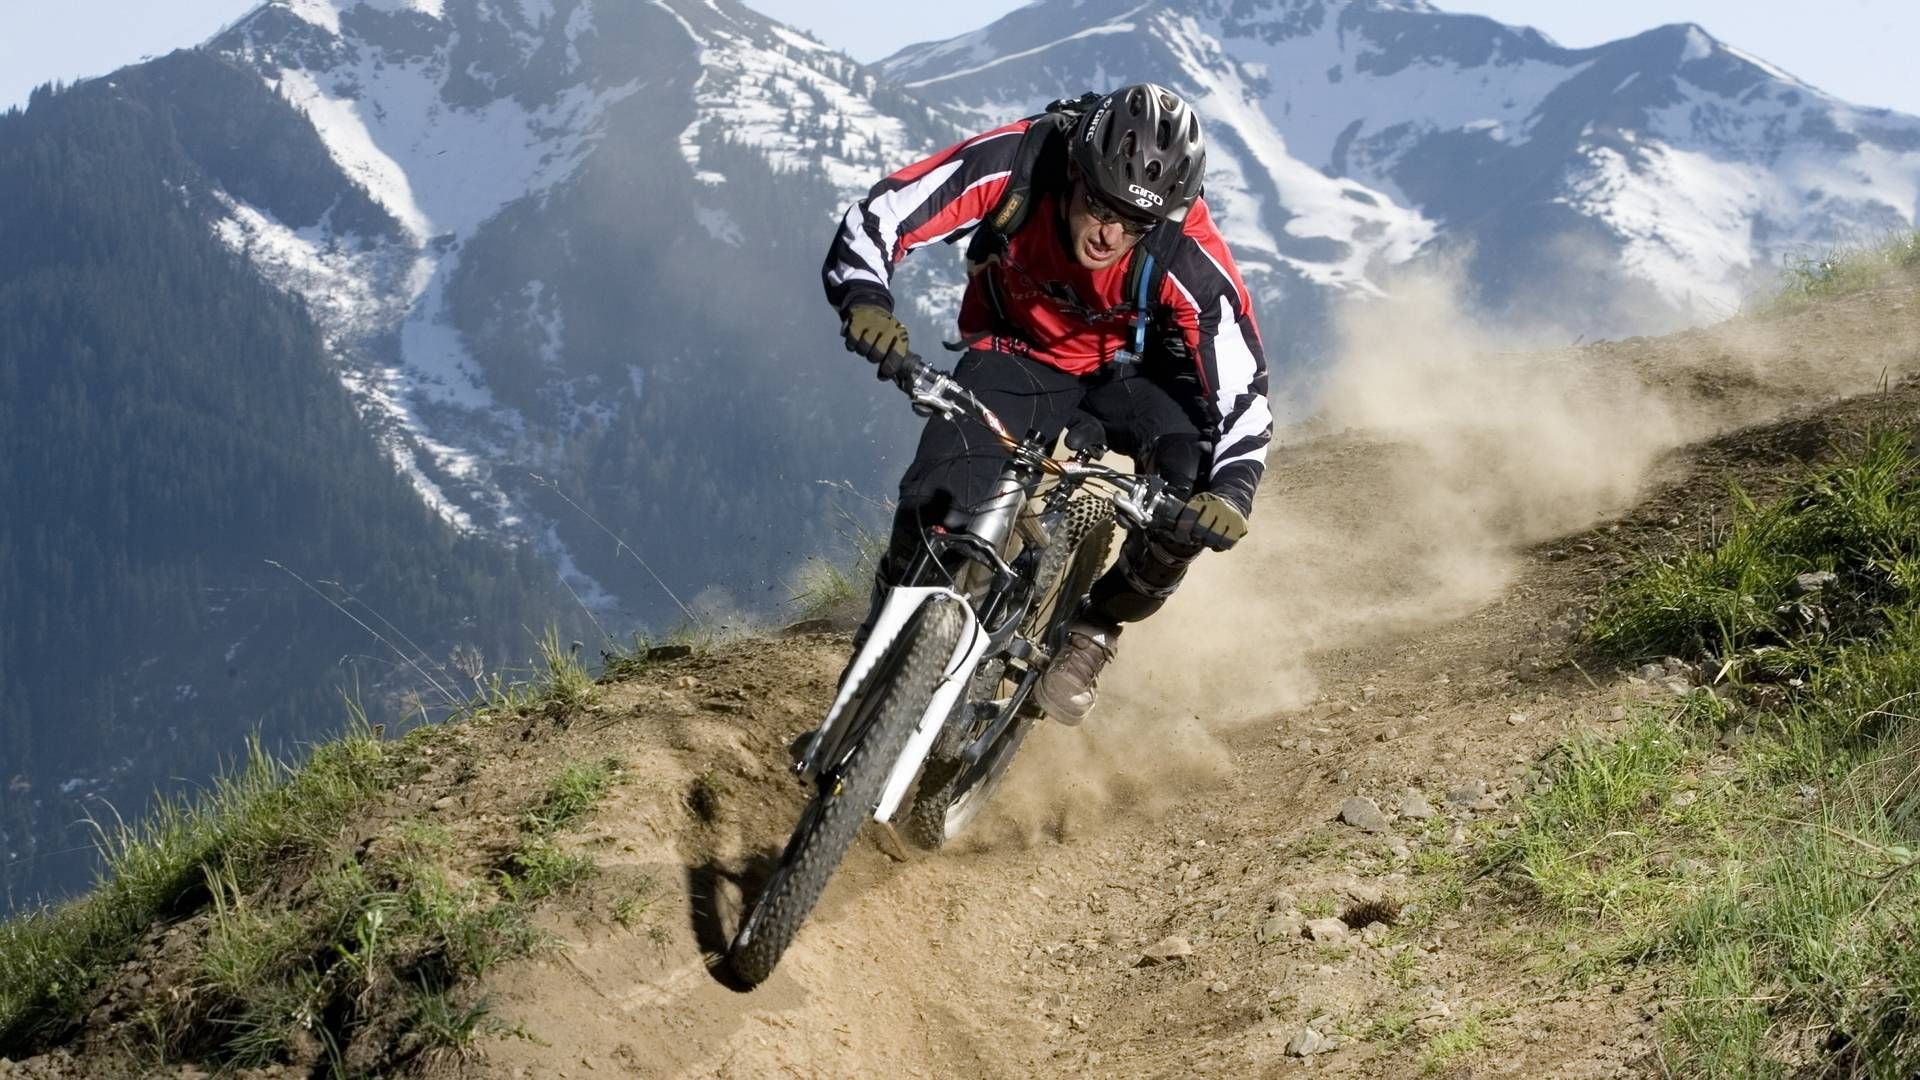 Mountain Bike Wallpaper Free Download